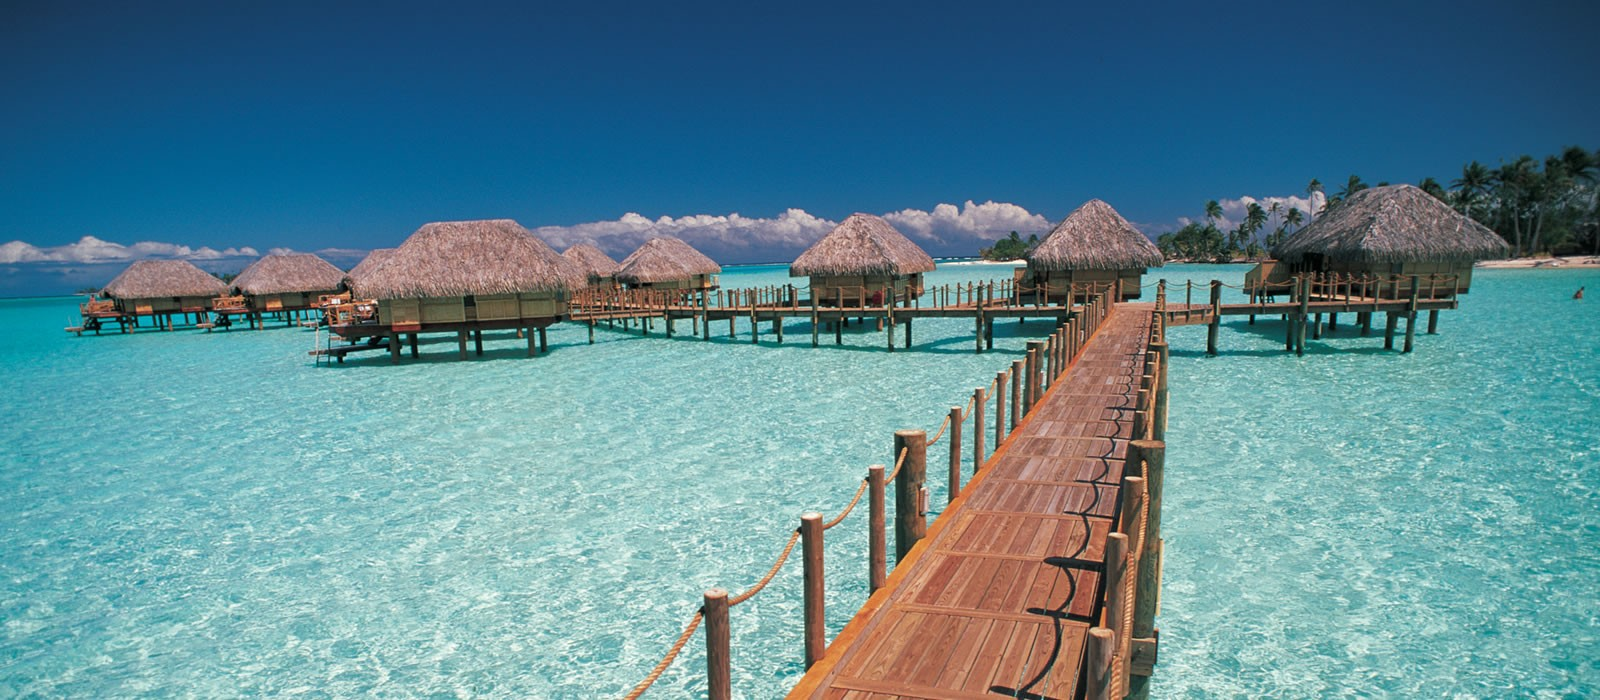 bora bora pearl beach resort bora bora honeymoon With bora bora honeymoon packages